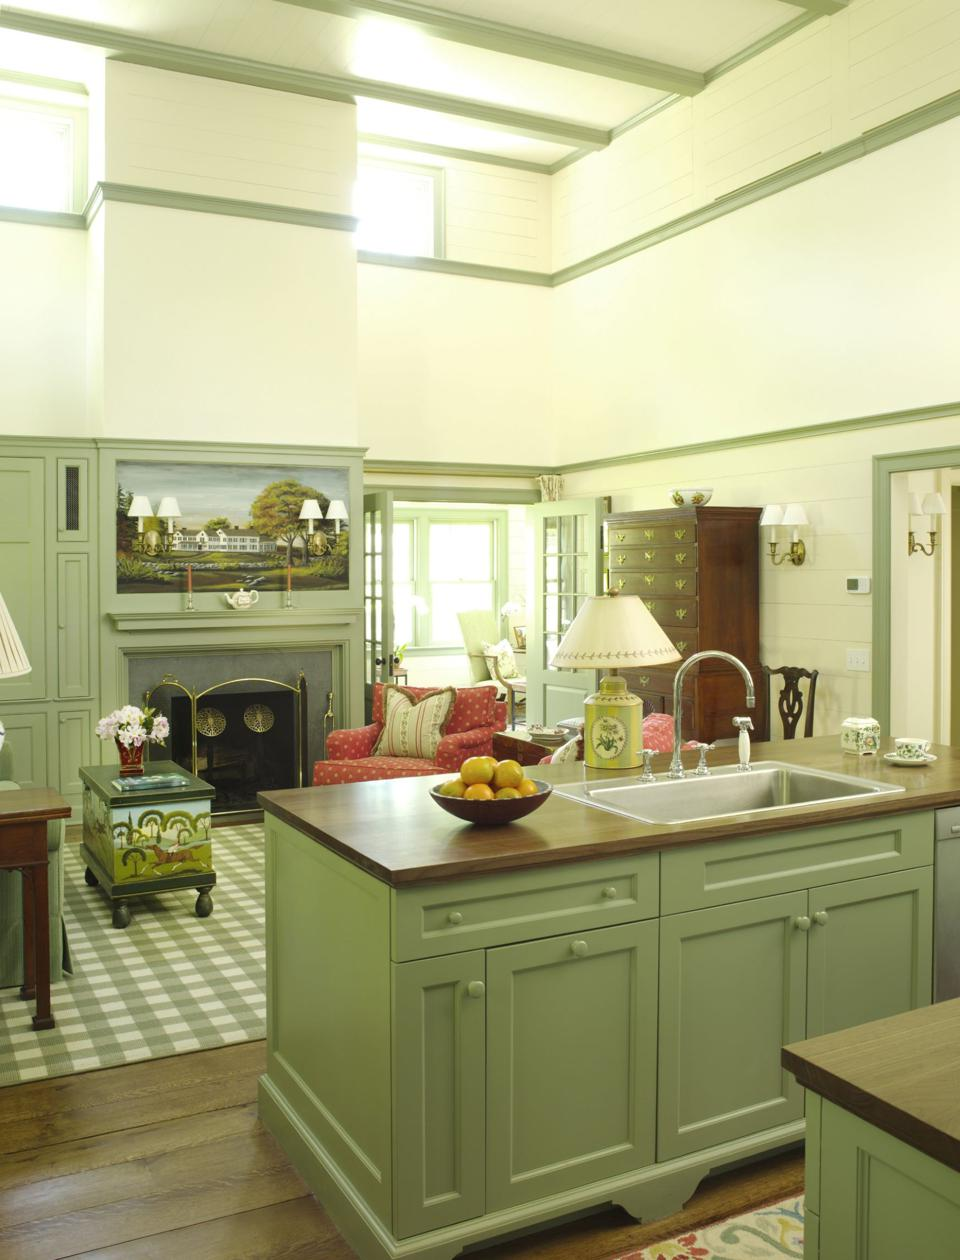 green painted cabinets, and an island characterize this open kitchen with high ceilings and lots of windows.